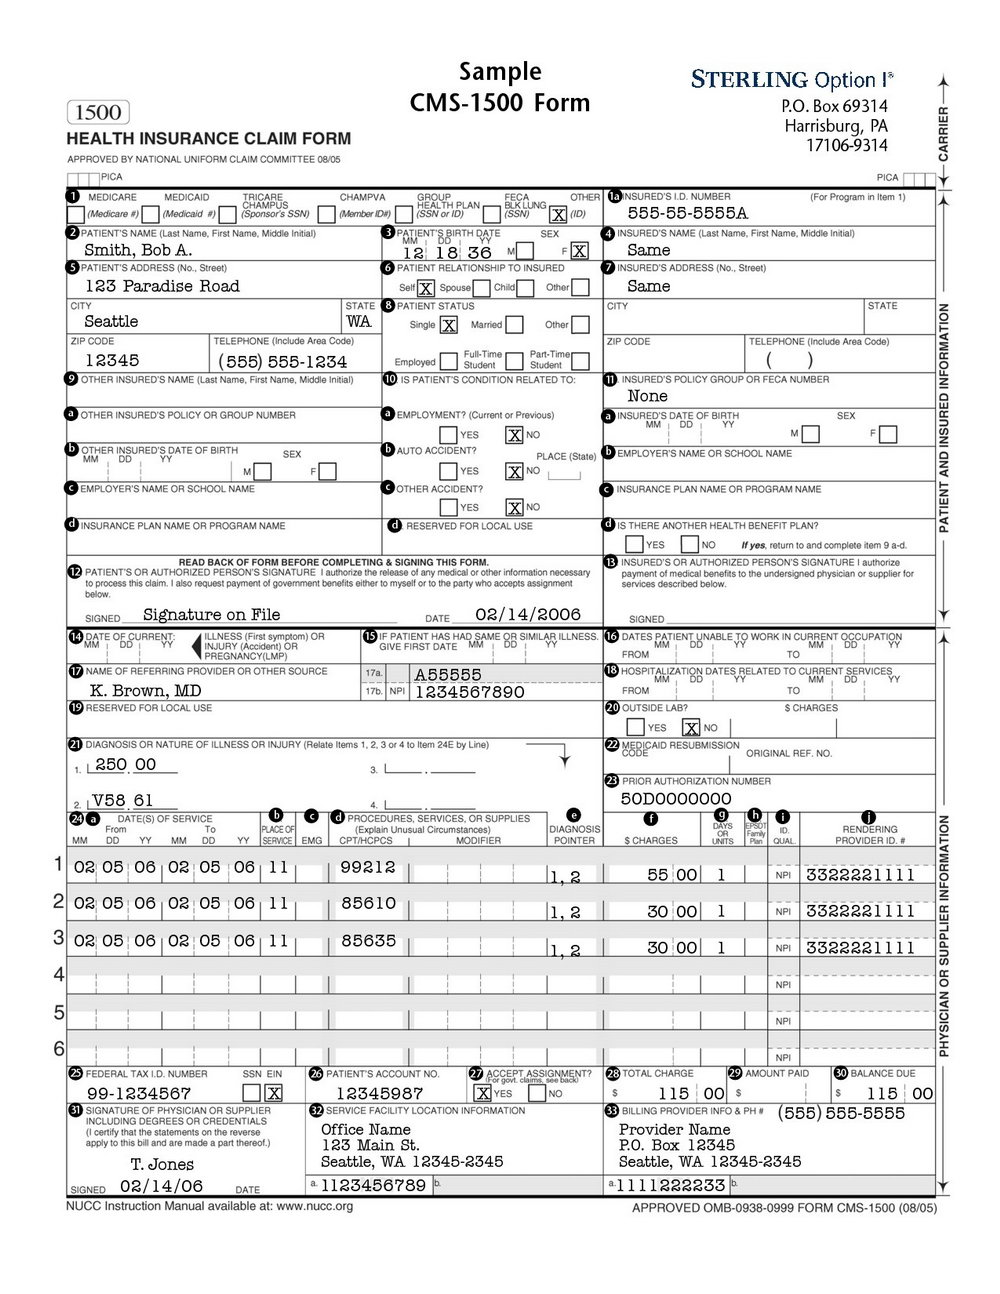 1500 Health Insurance Claim Form Pdf